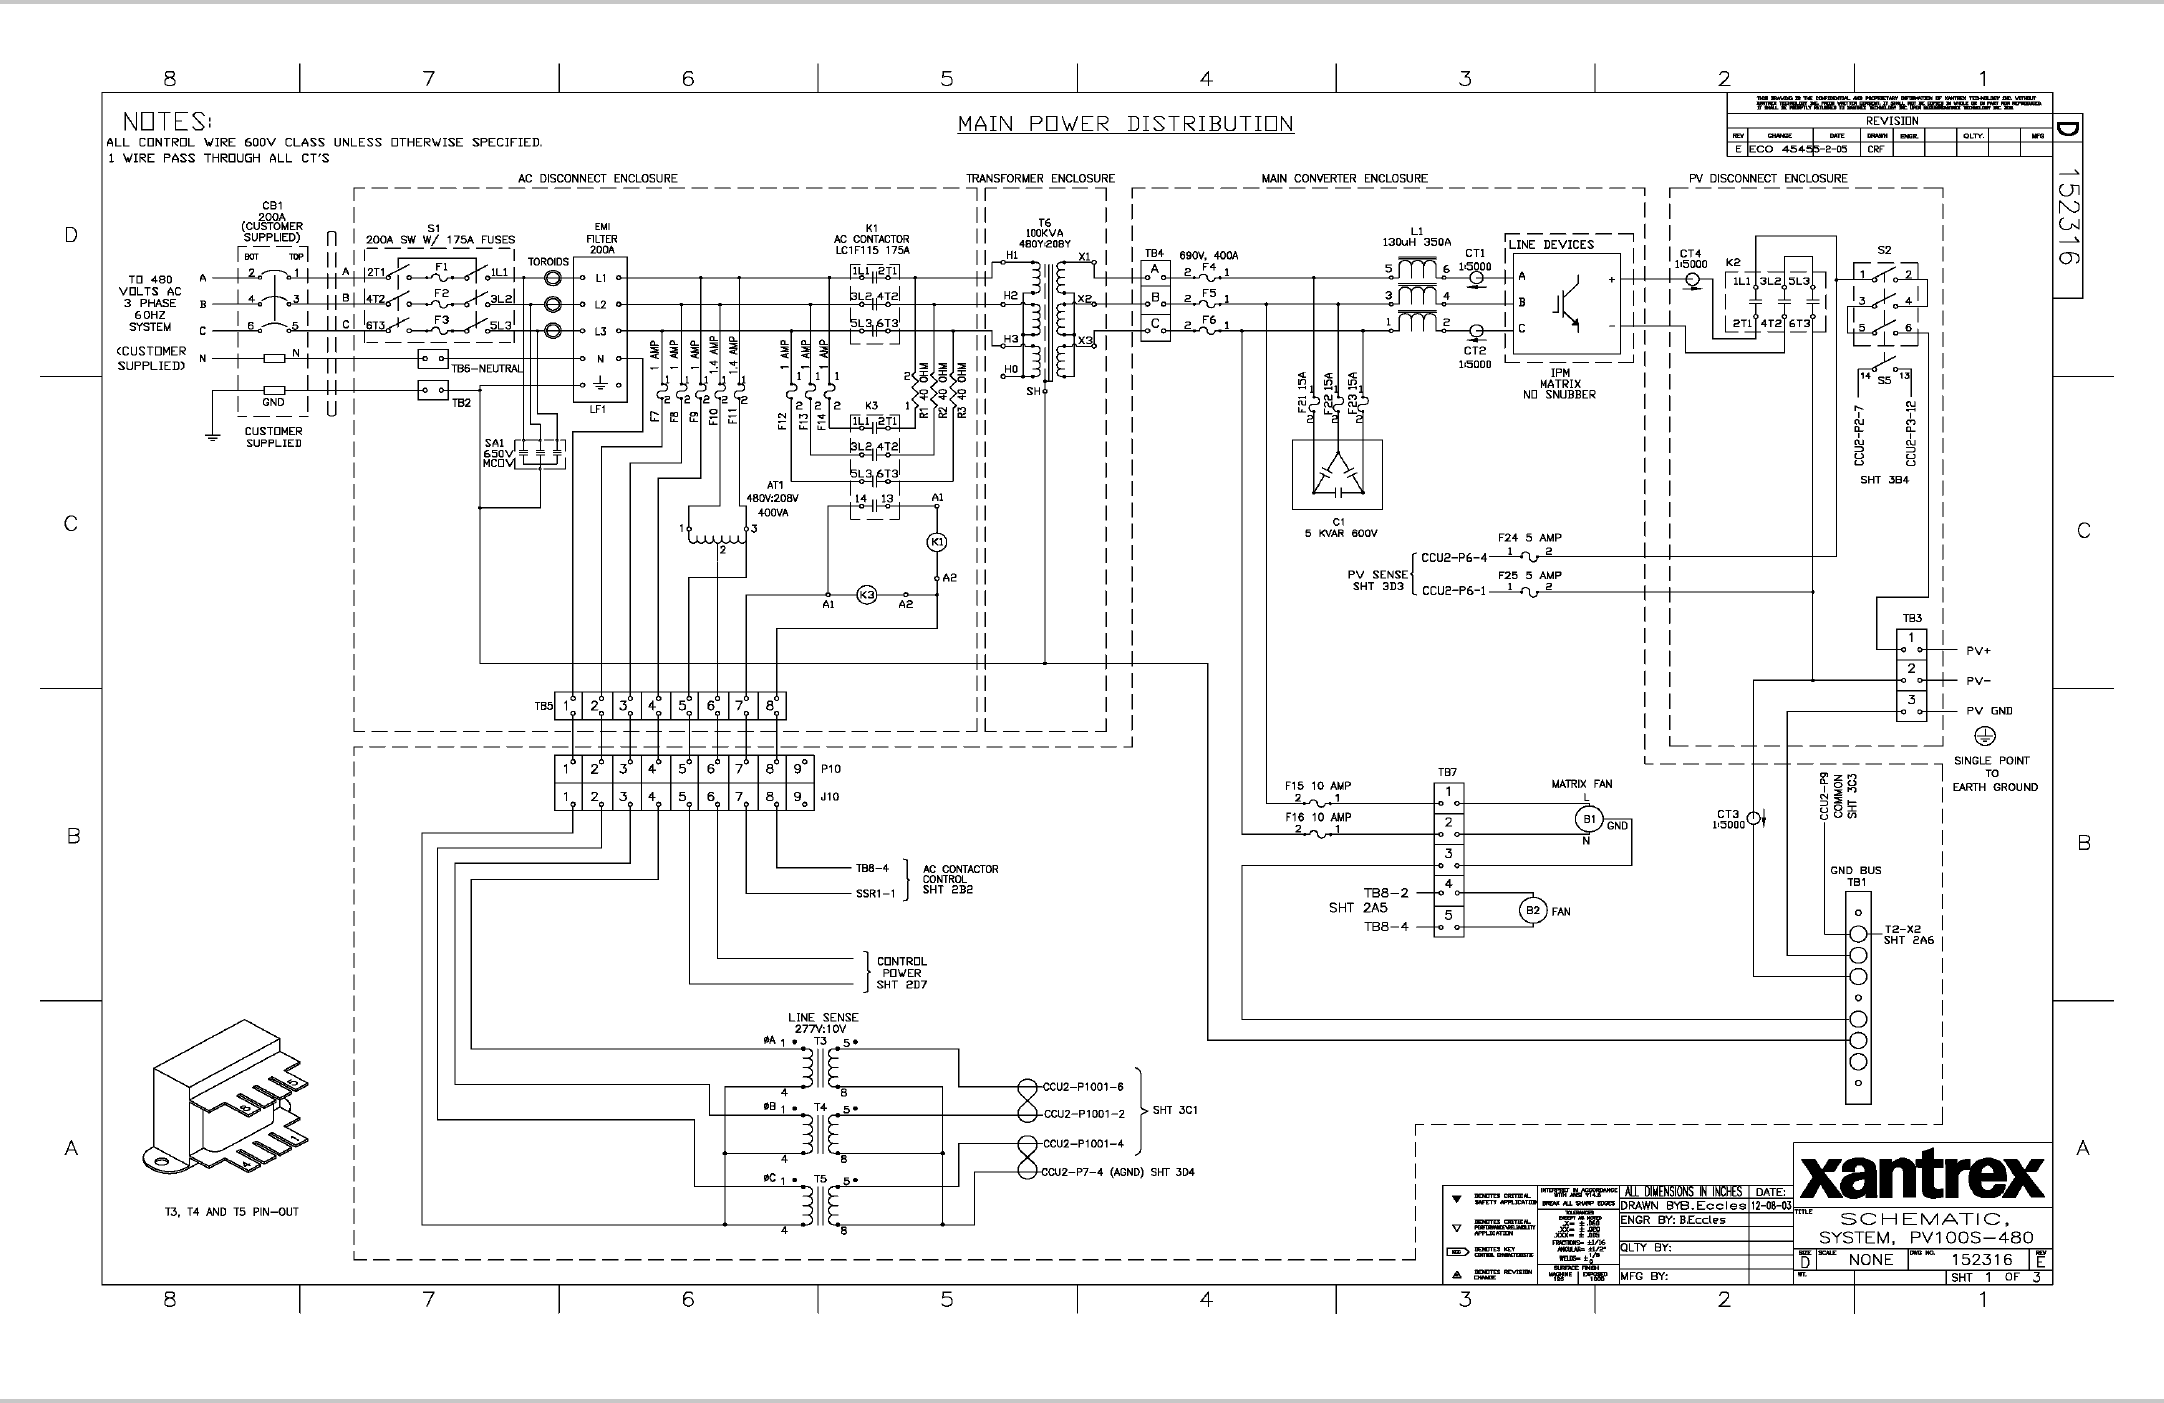 Mtrus Tt505 furthermore Proform Treadmill Schematic Diagram furthermore 145893435 in addition Frequently Asked Questions together with Watch. on tub wiring diagram